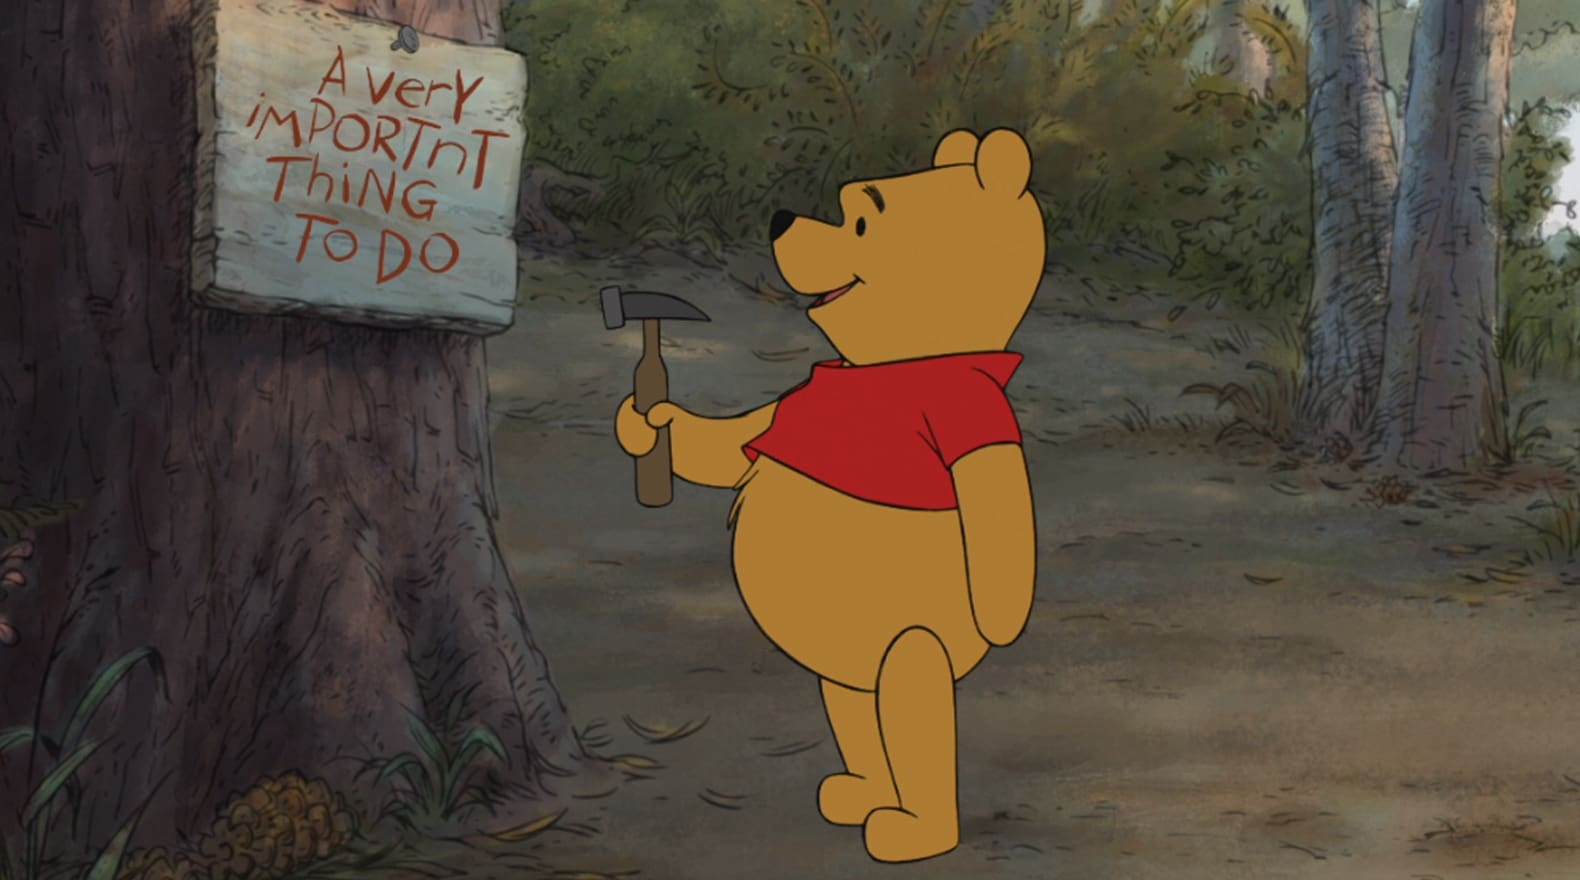 Pooh has a very important thing to do.